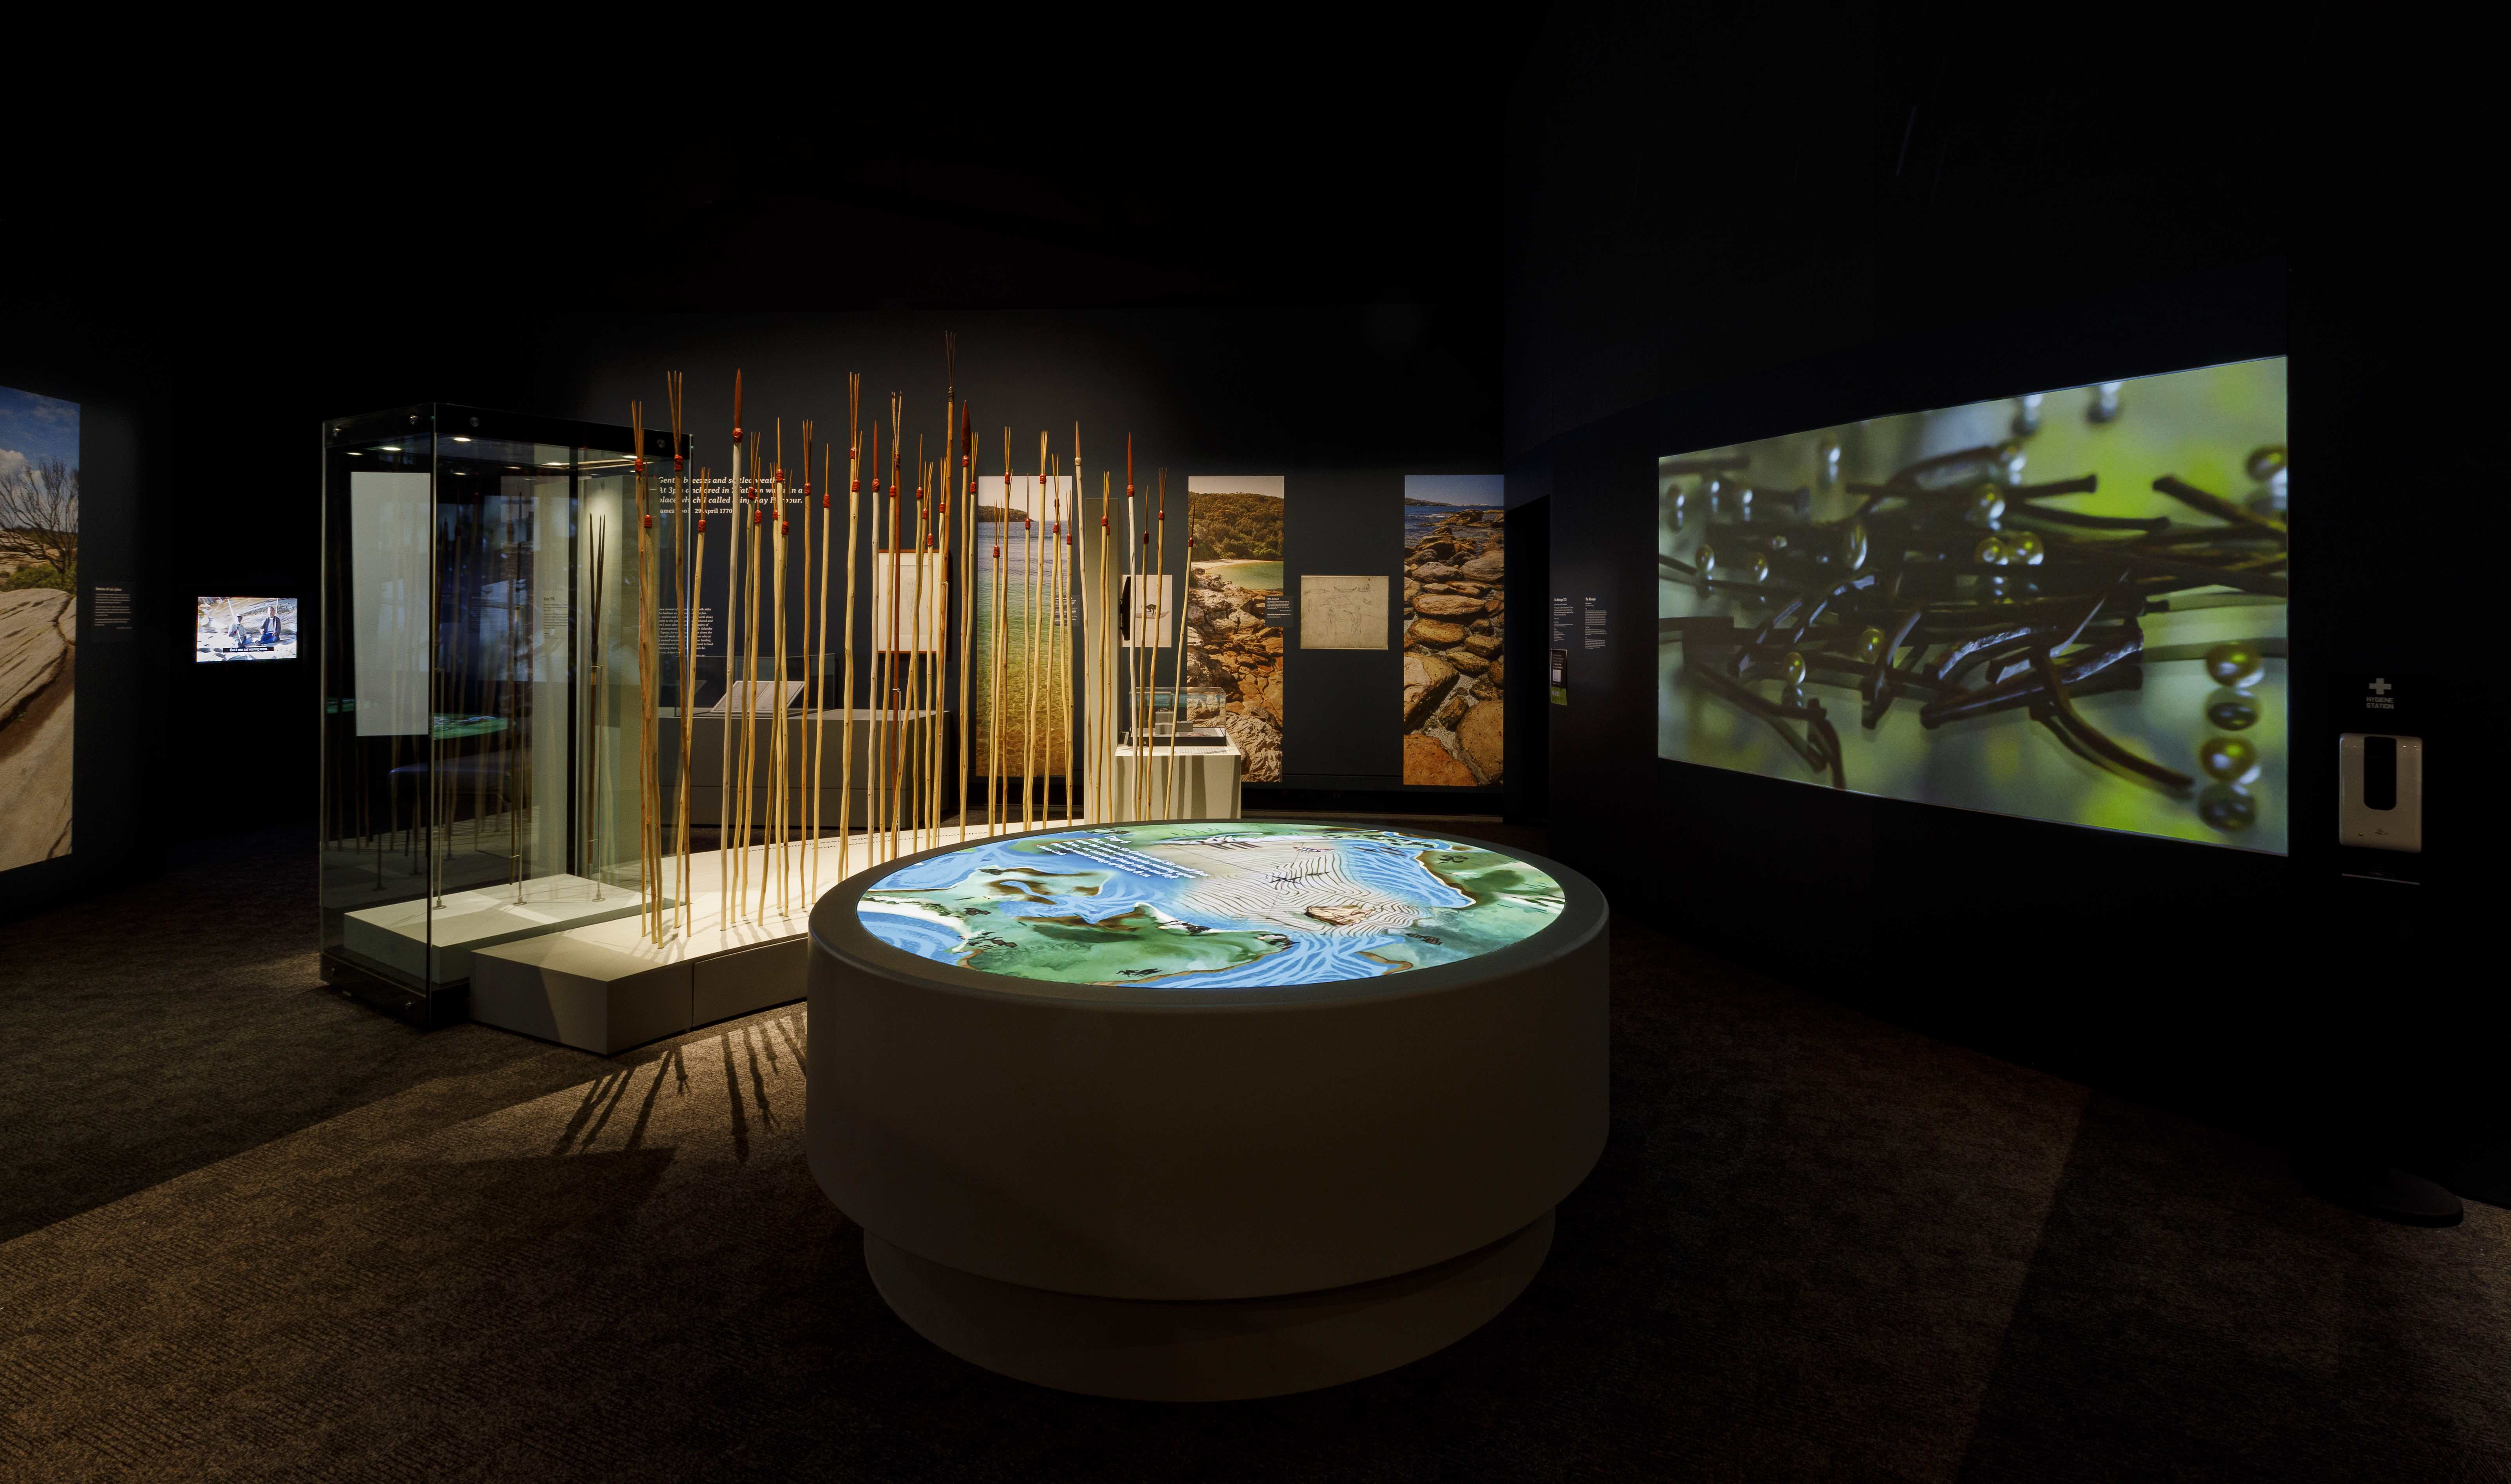 Gweagal spears on display at the National Museum of Australia, 2020-21